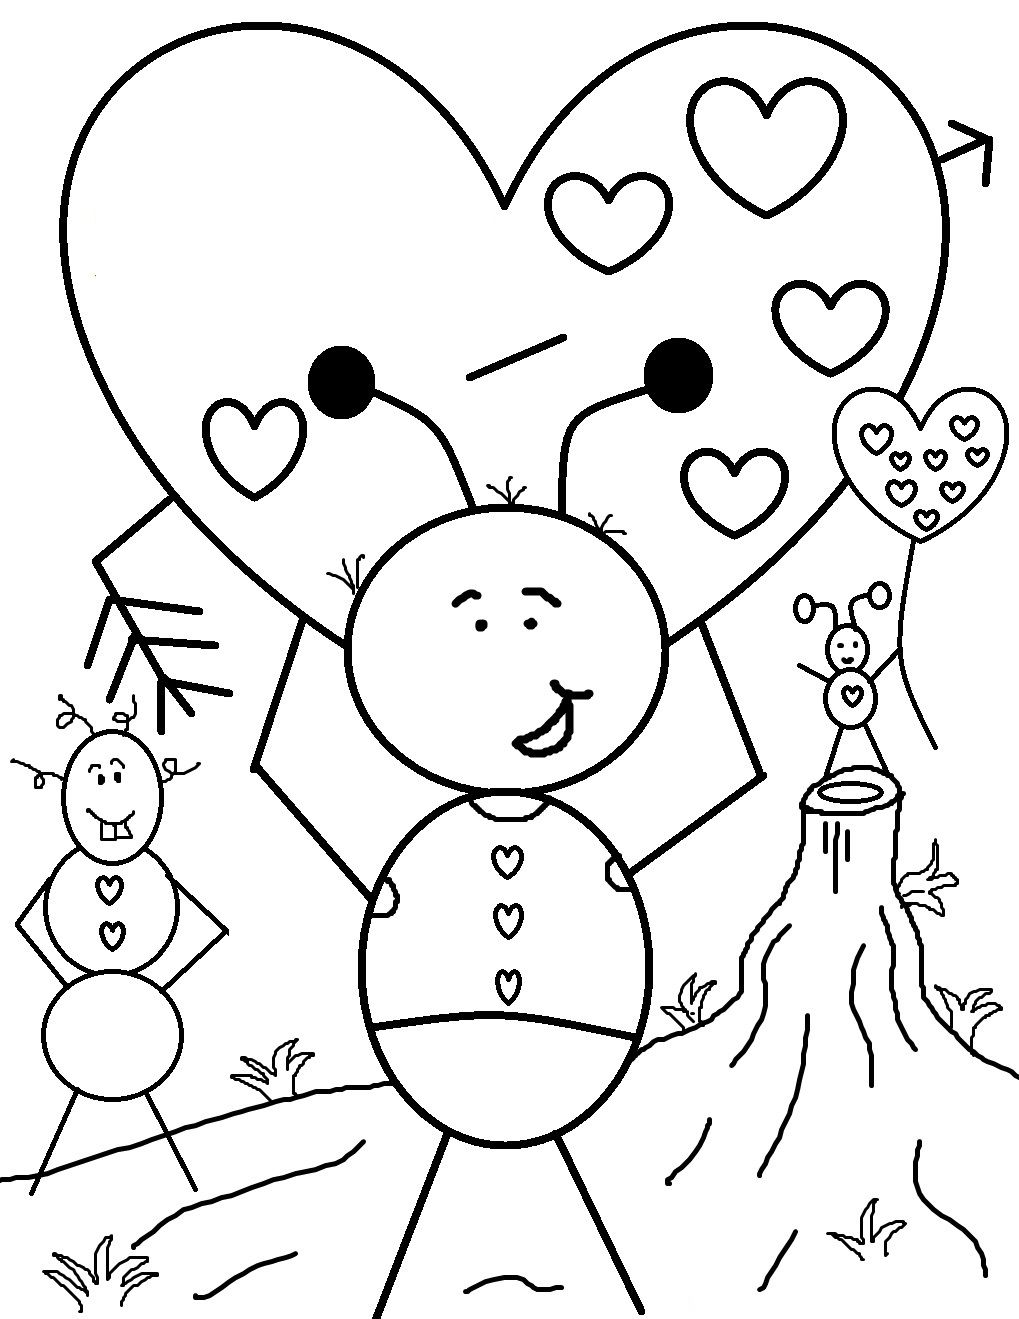 Free Printable Valentine Coloring Pages For Kids Printable Valentines Coloring Pages Valentines Day Coloring Page Valentine Coloring Sheets